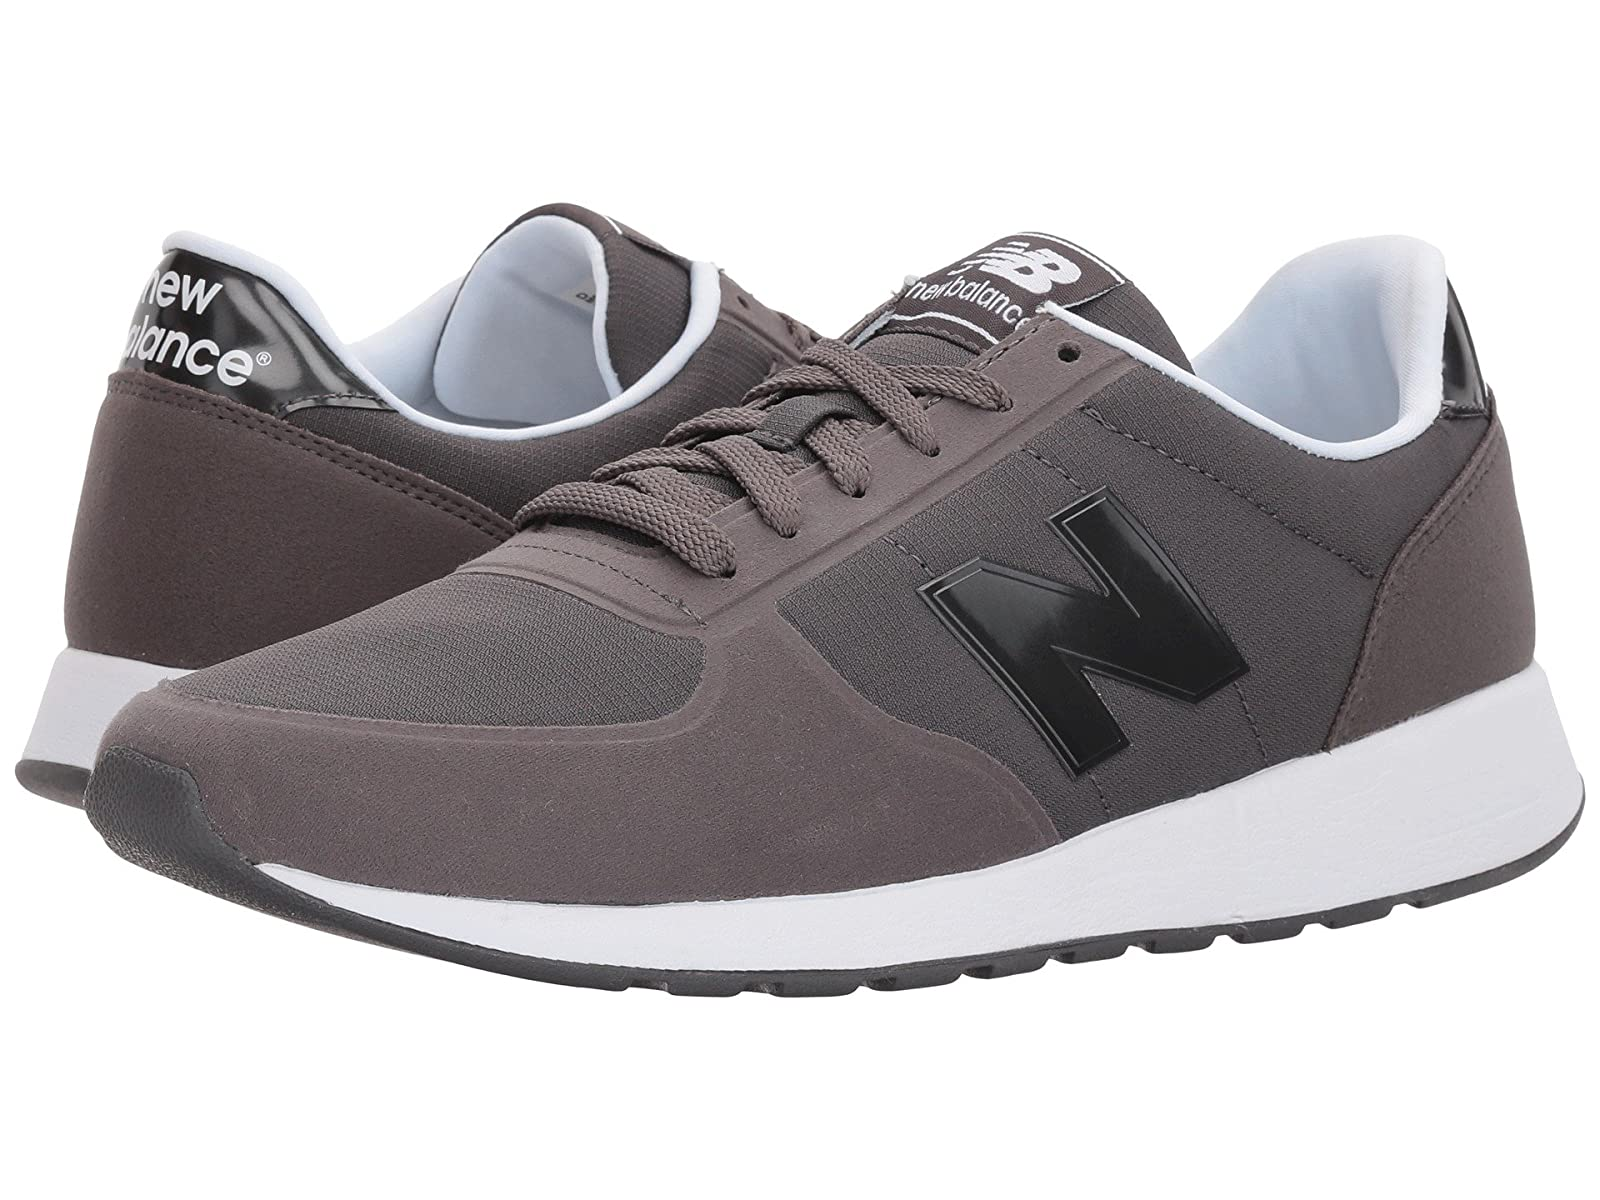 New Balance Classics MS215v1Cheap and distinctive eye-catching shoes